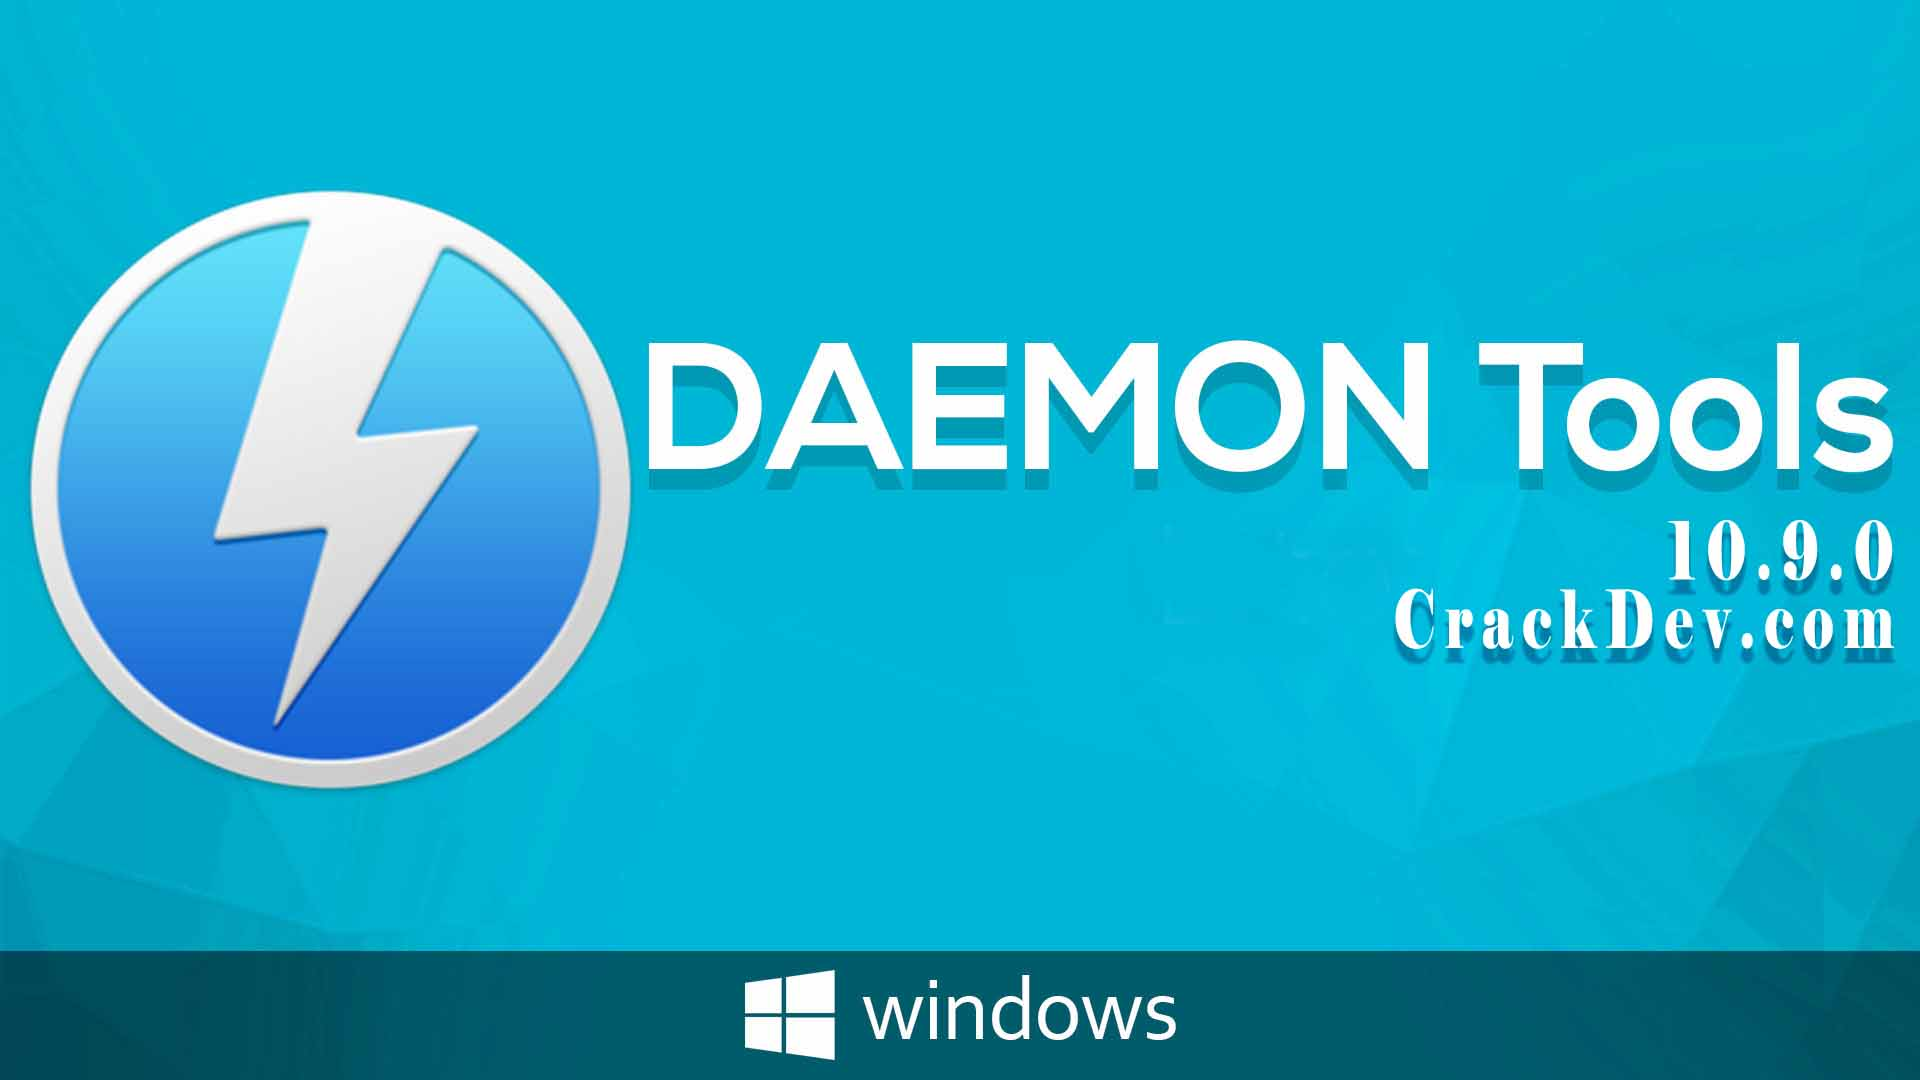 daemon tools lite full version with crack free download